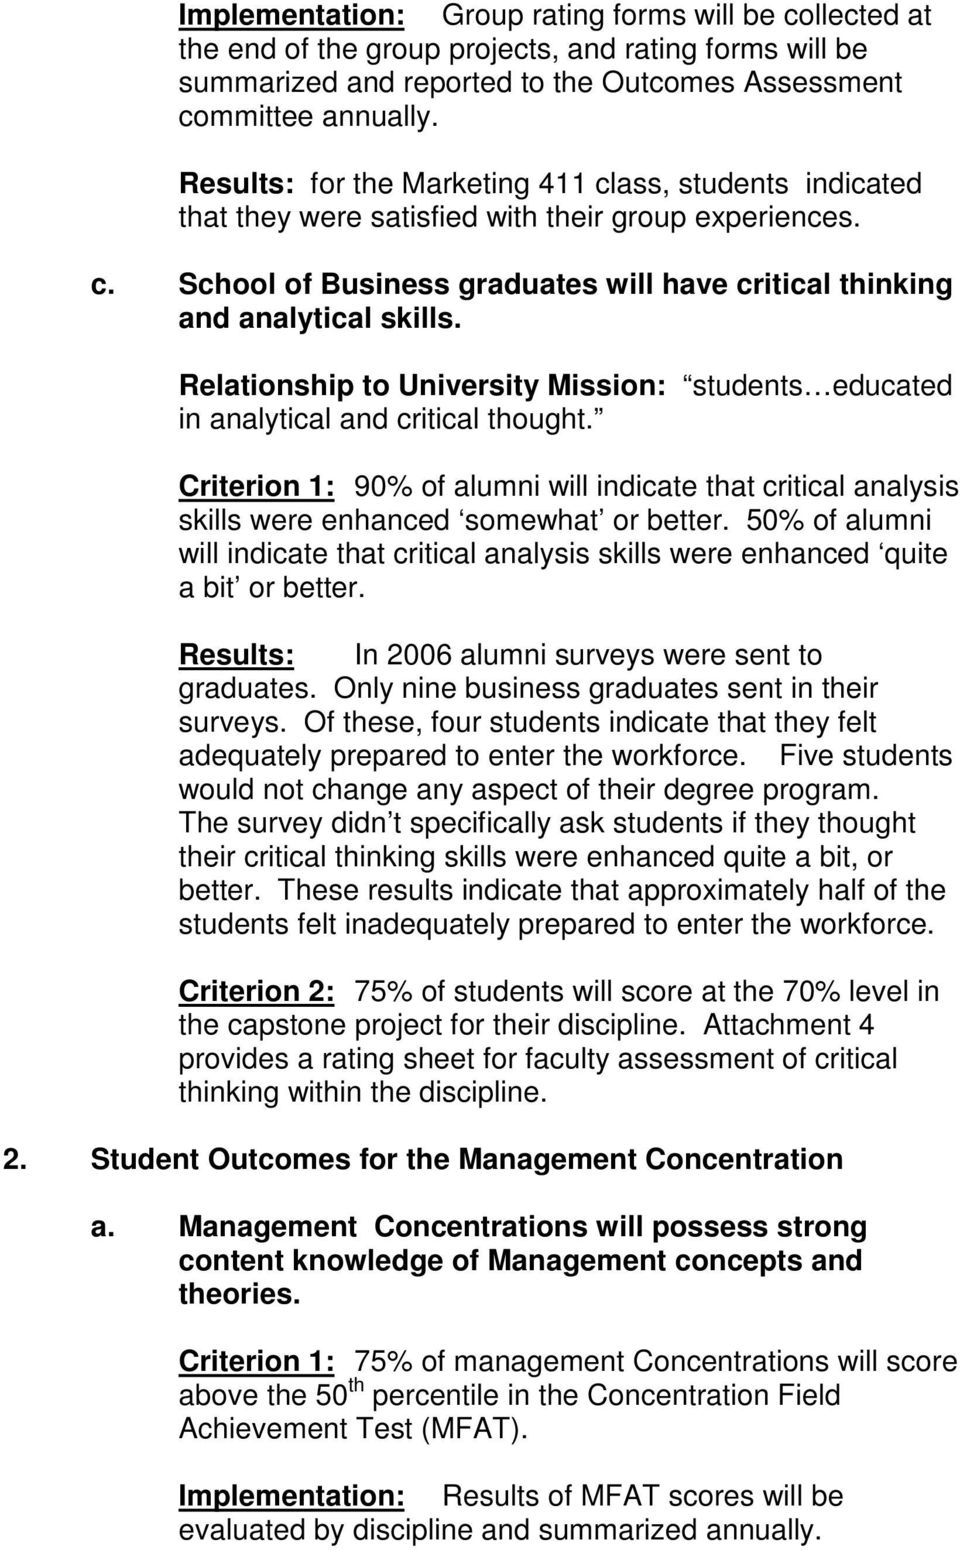 Relationship to University Mission: students educated in analytical and critical thought. Criterion 1: 90% of alumni will indicate that critical analysis skills were enhanced somewhat or better.